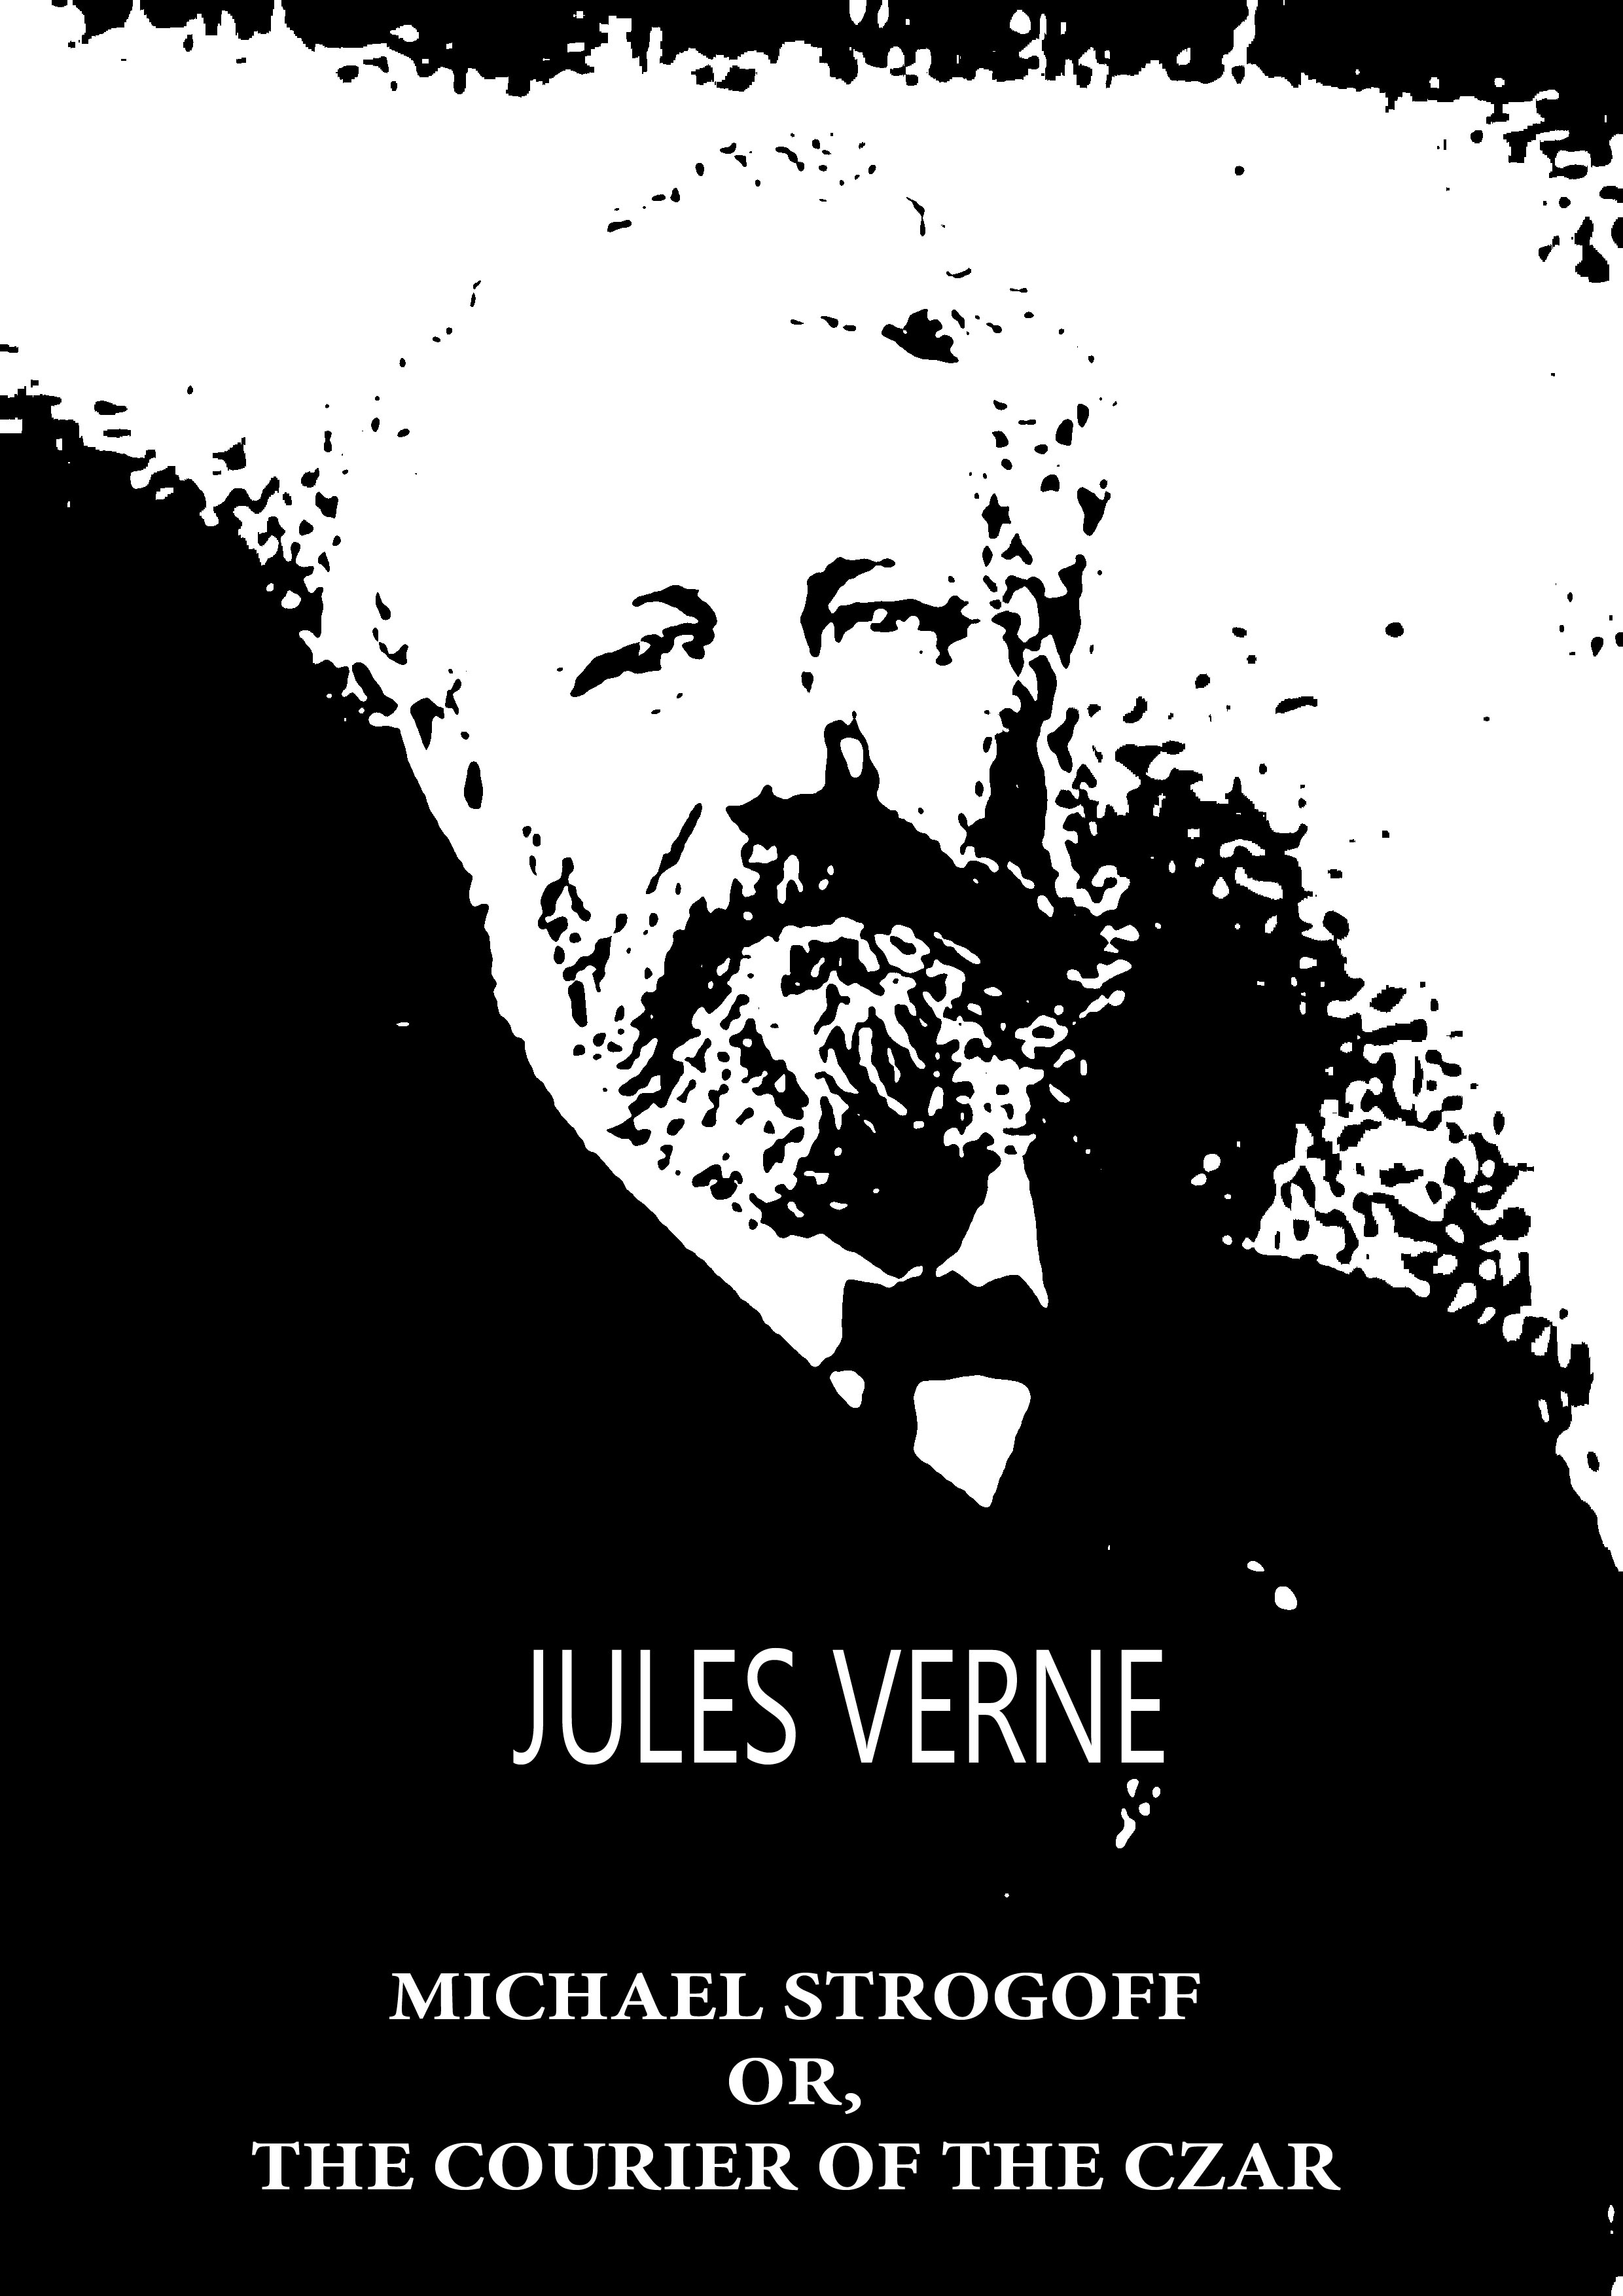 Jules Verne - Michael Strogoff Or, The Courier Of The Czar